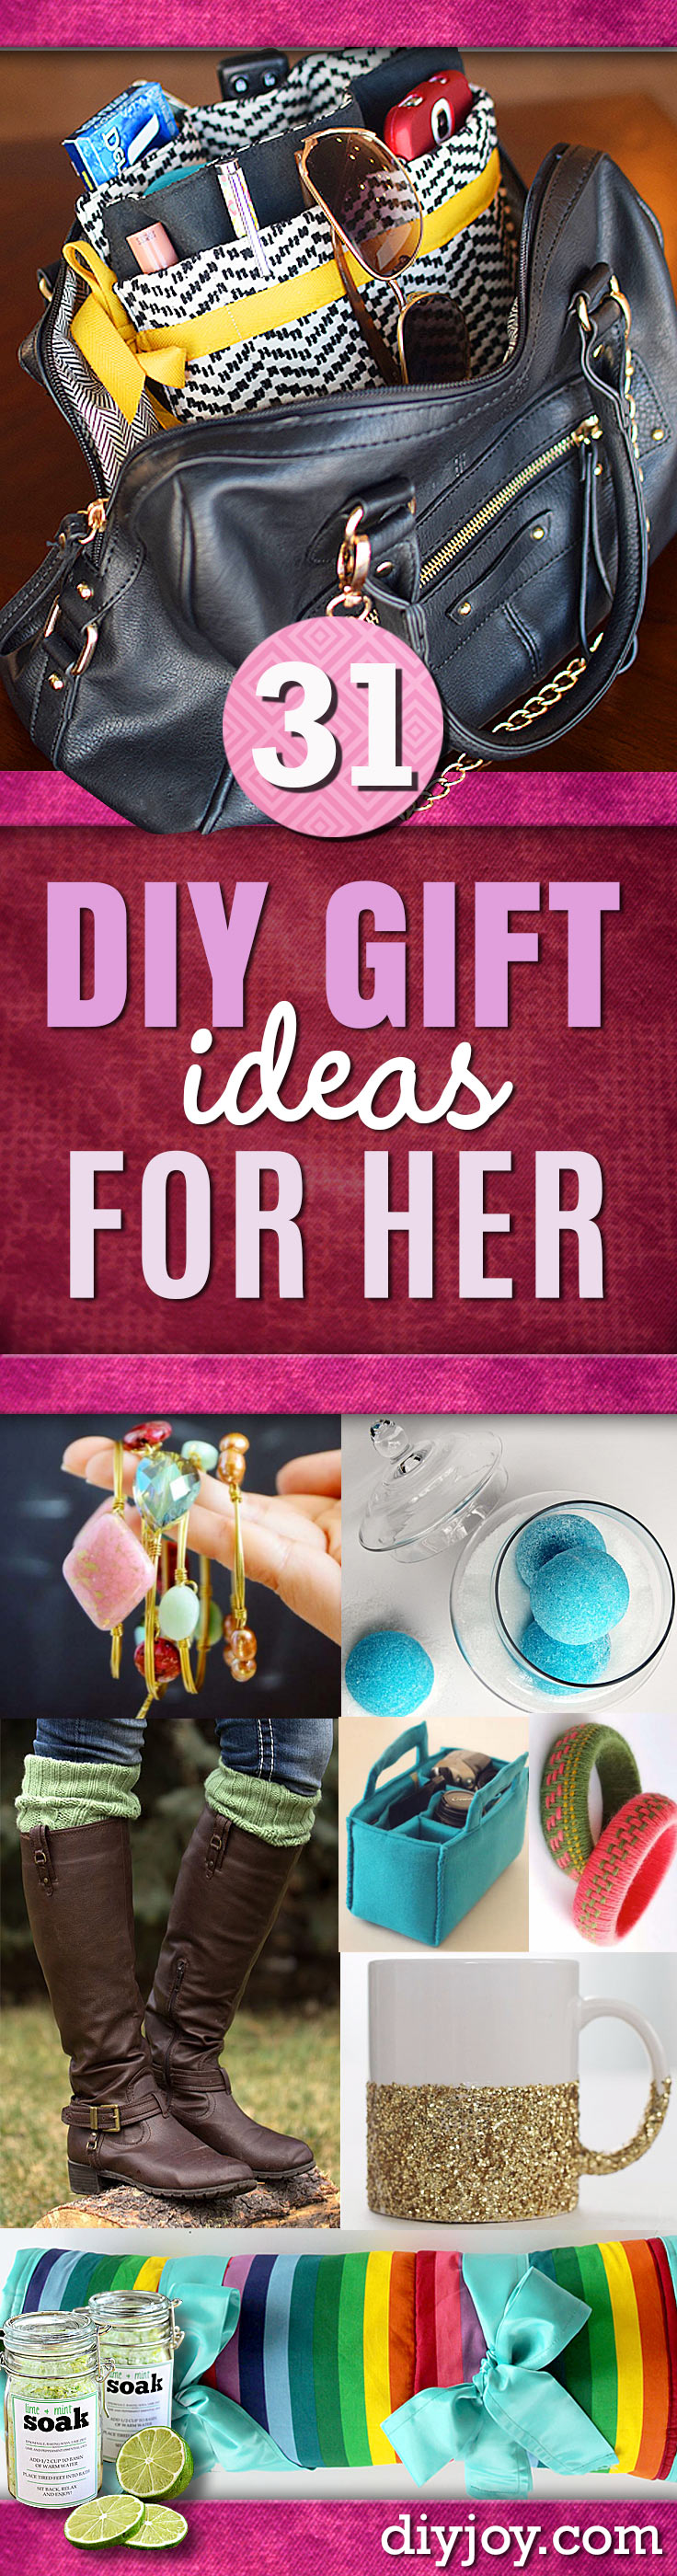 DIY Gift Ideas for Her